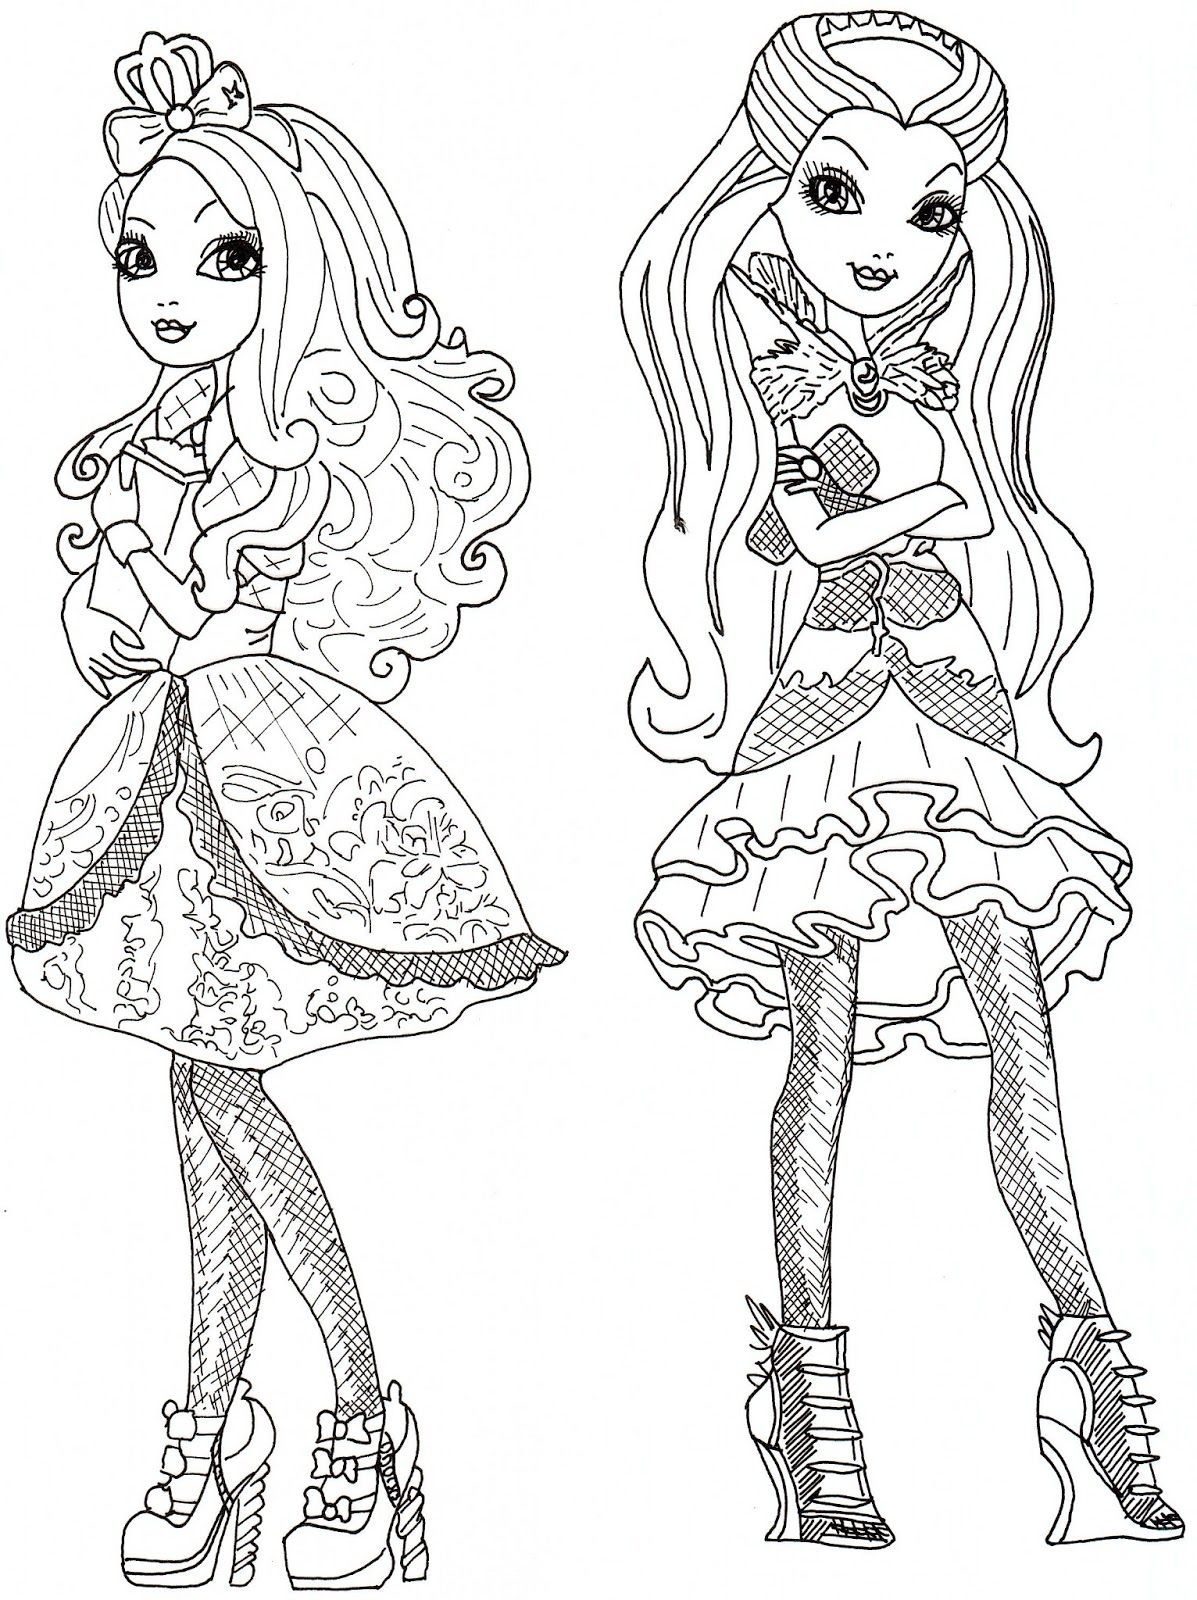 Ever After High Raven Queen Coloring Pages Apple White And Raven Queen Free Coloring Page Raven Queen Coloring Pages Free Coloring Pages